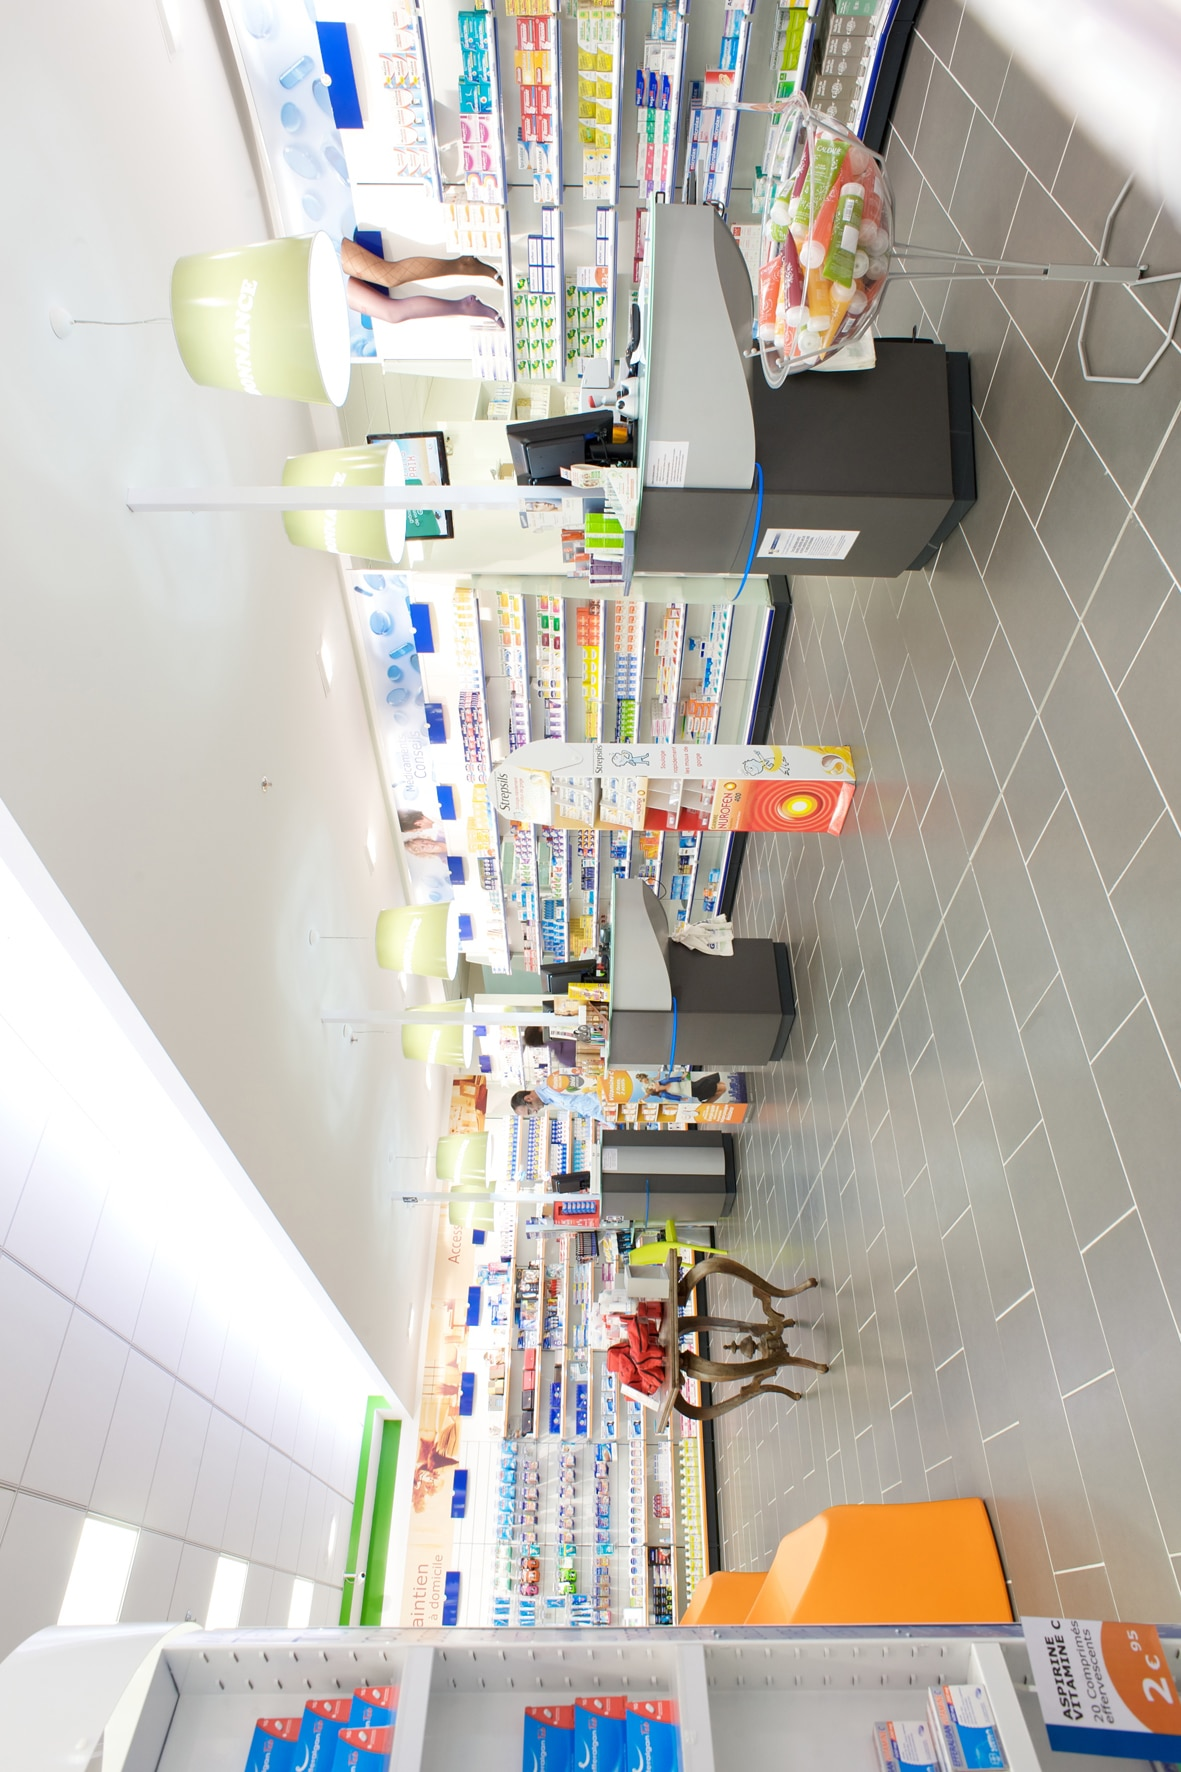 POTET_PHARMACIE_CENTRE_COMMERCIAL5